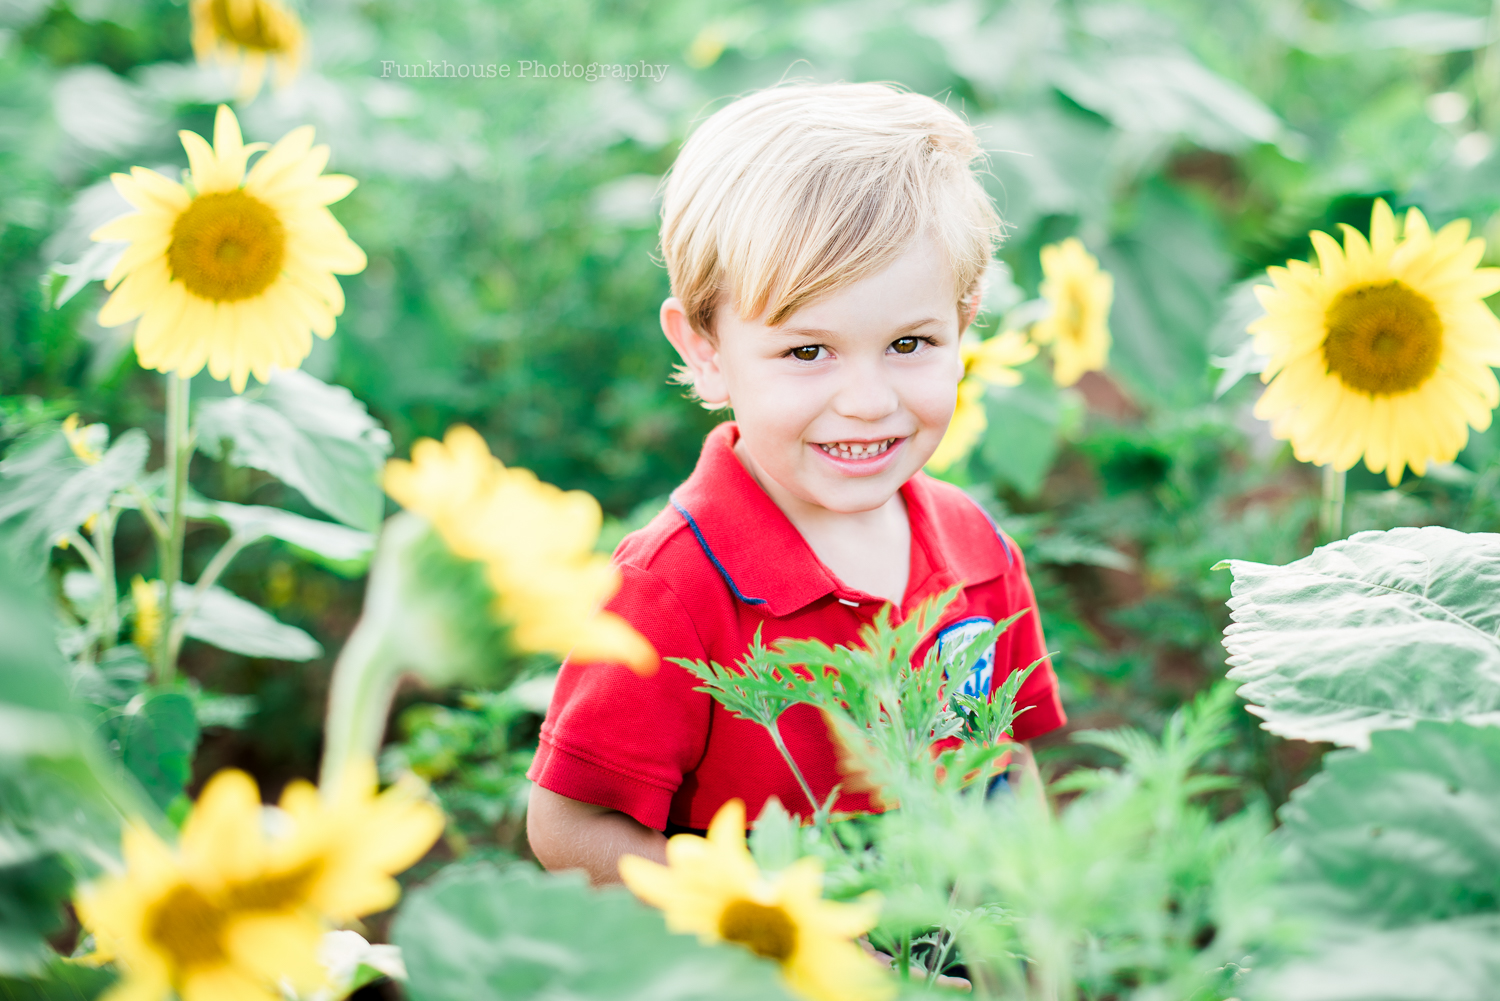 sunflower child portrait.jpg